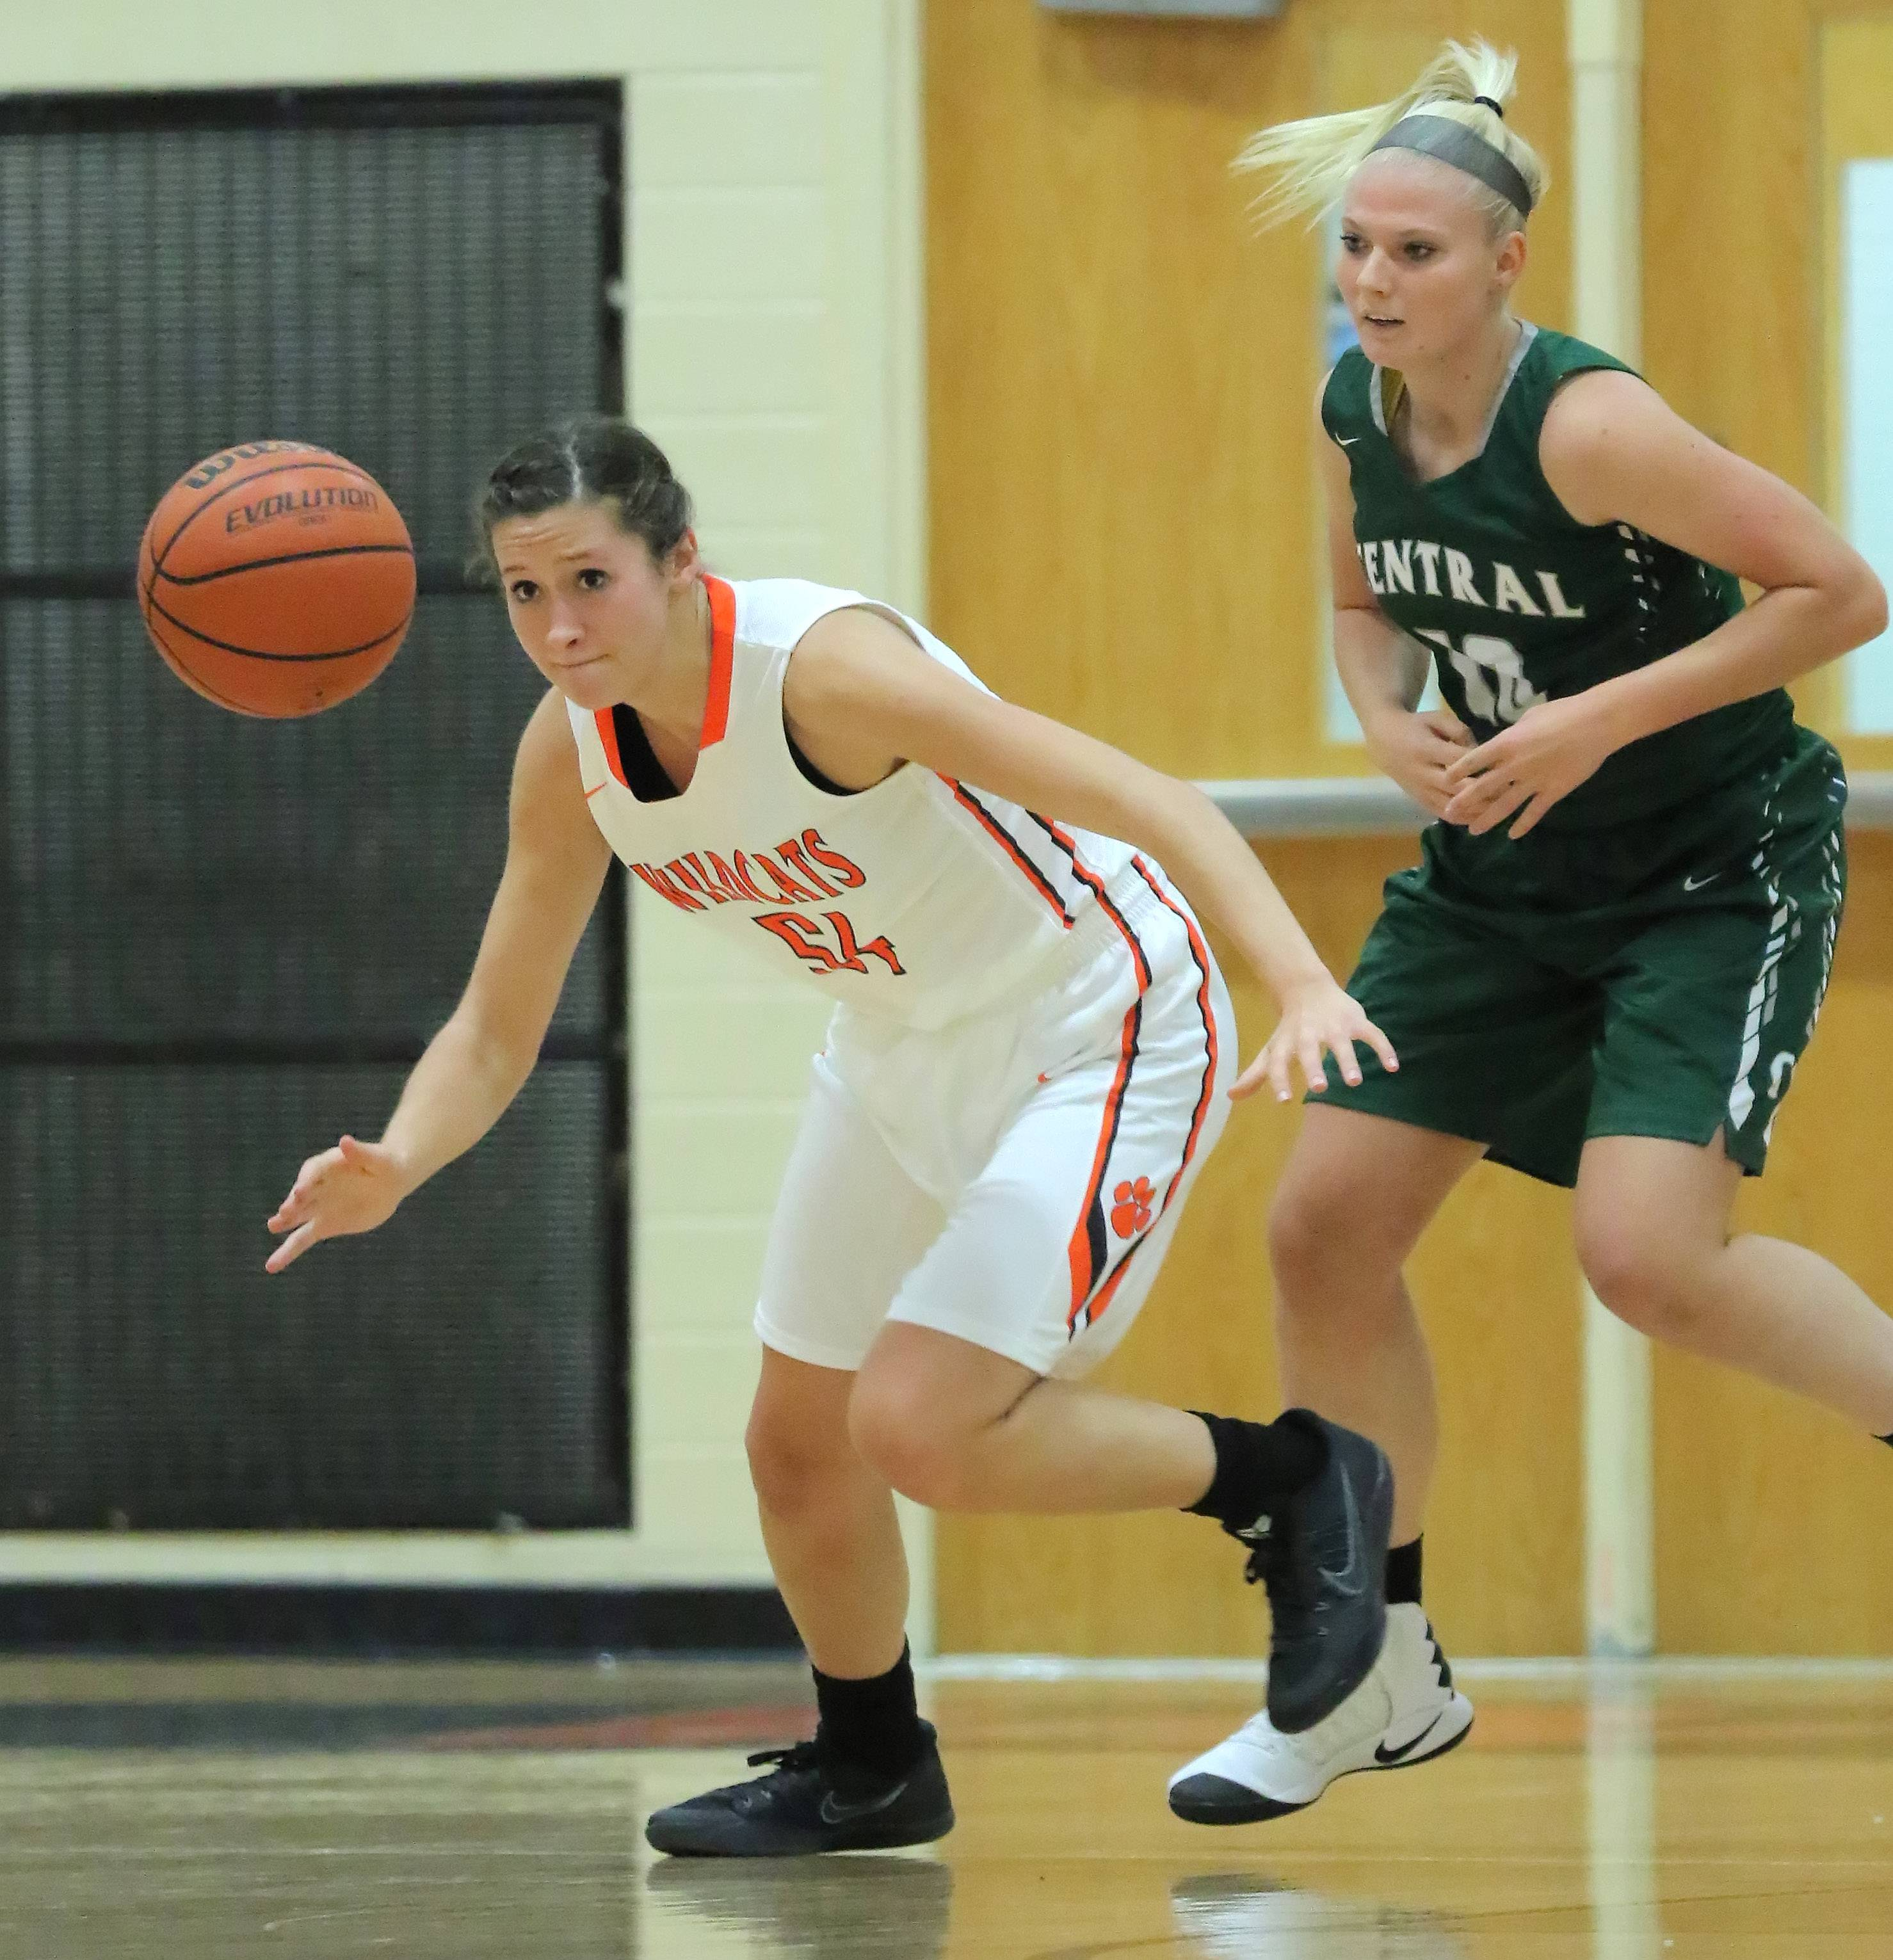 Libertyville's Claire Keefe, left, and Grayslake Central's Jordyn Gosell go for a rebound Tuesday night at Libertyville.